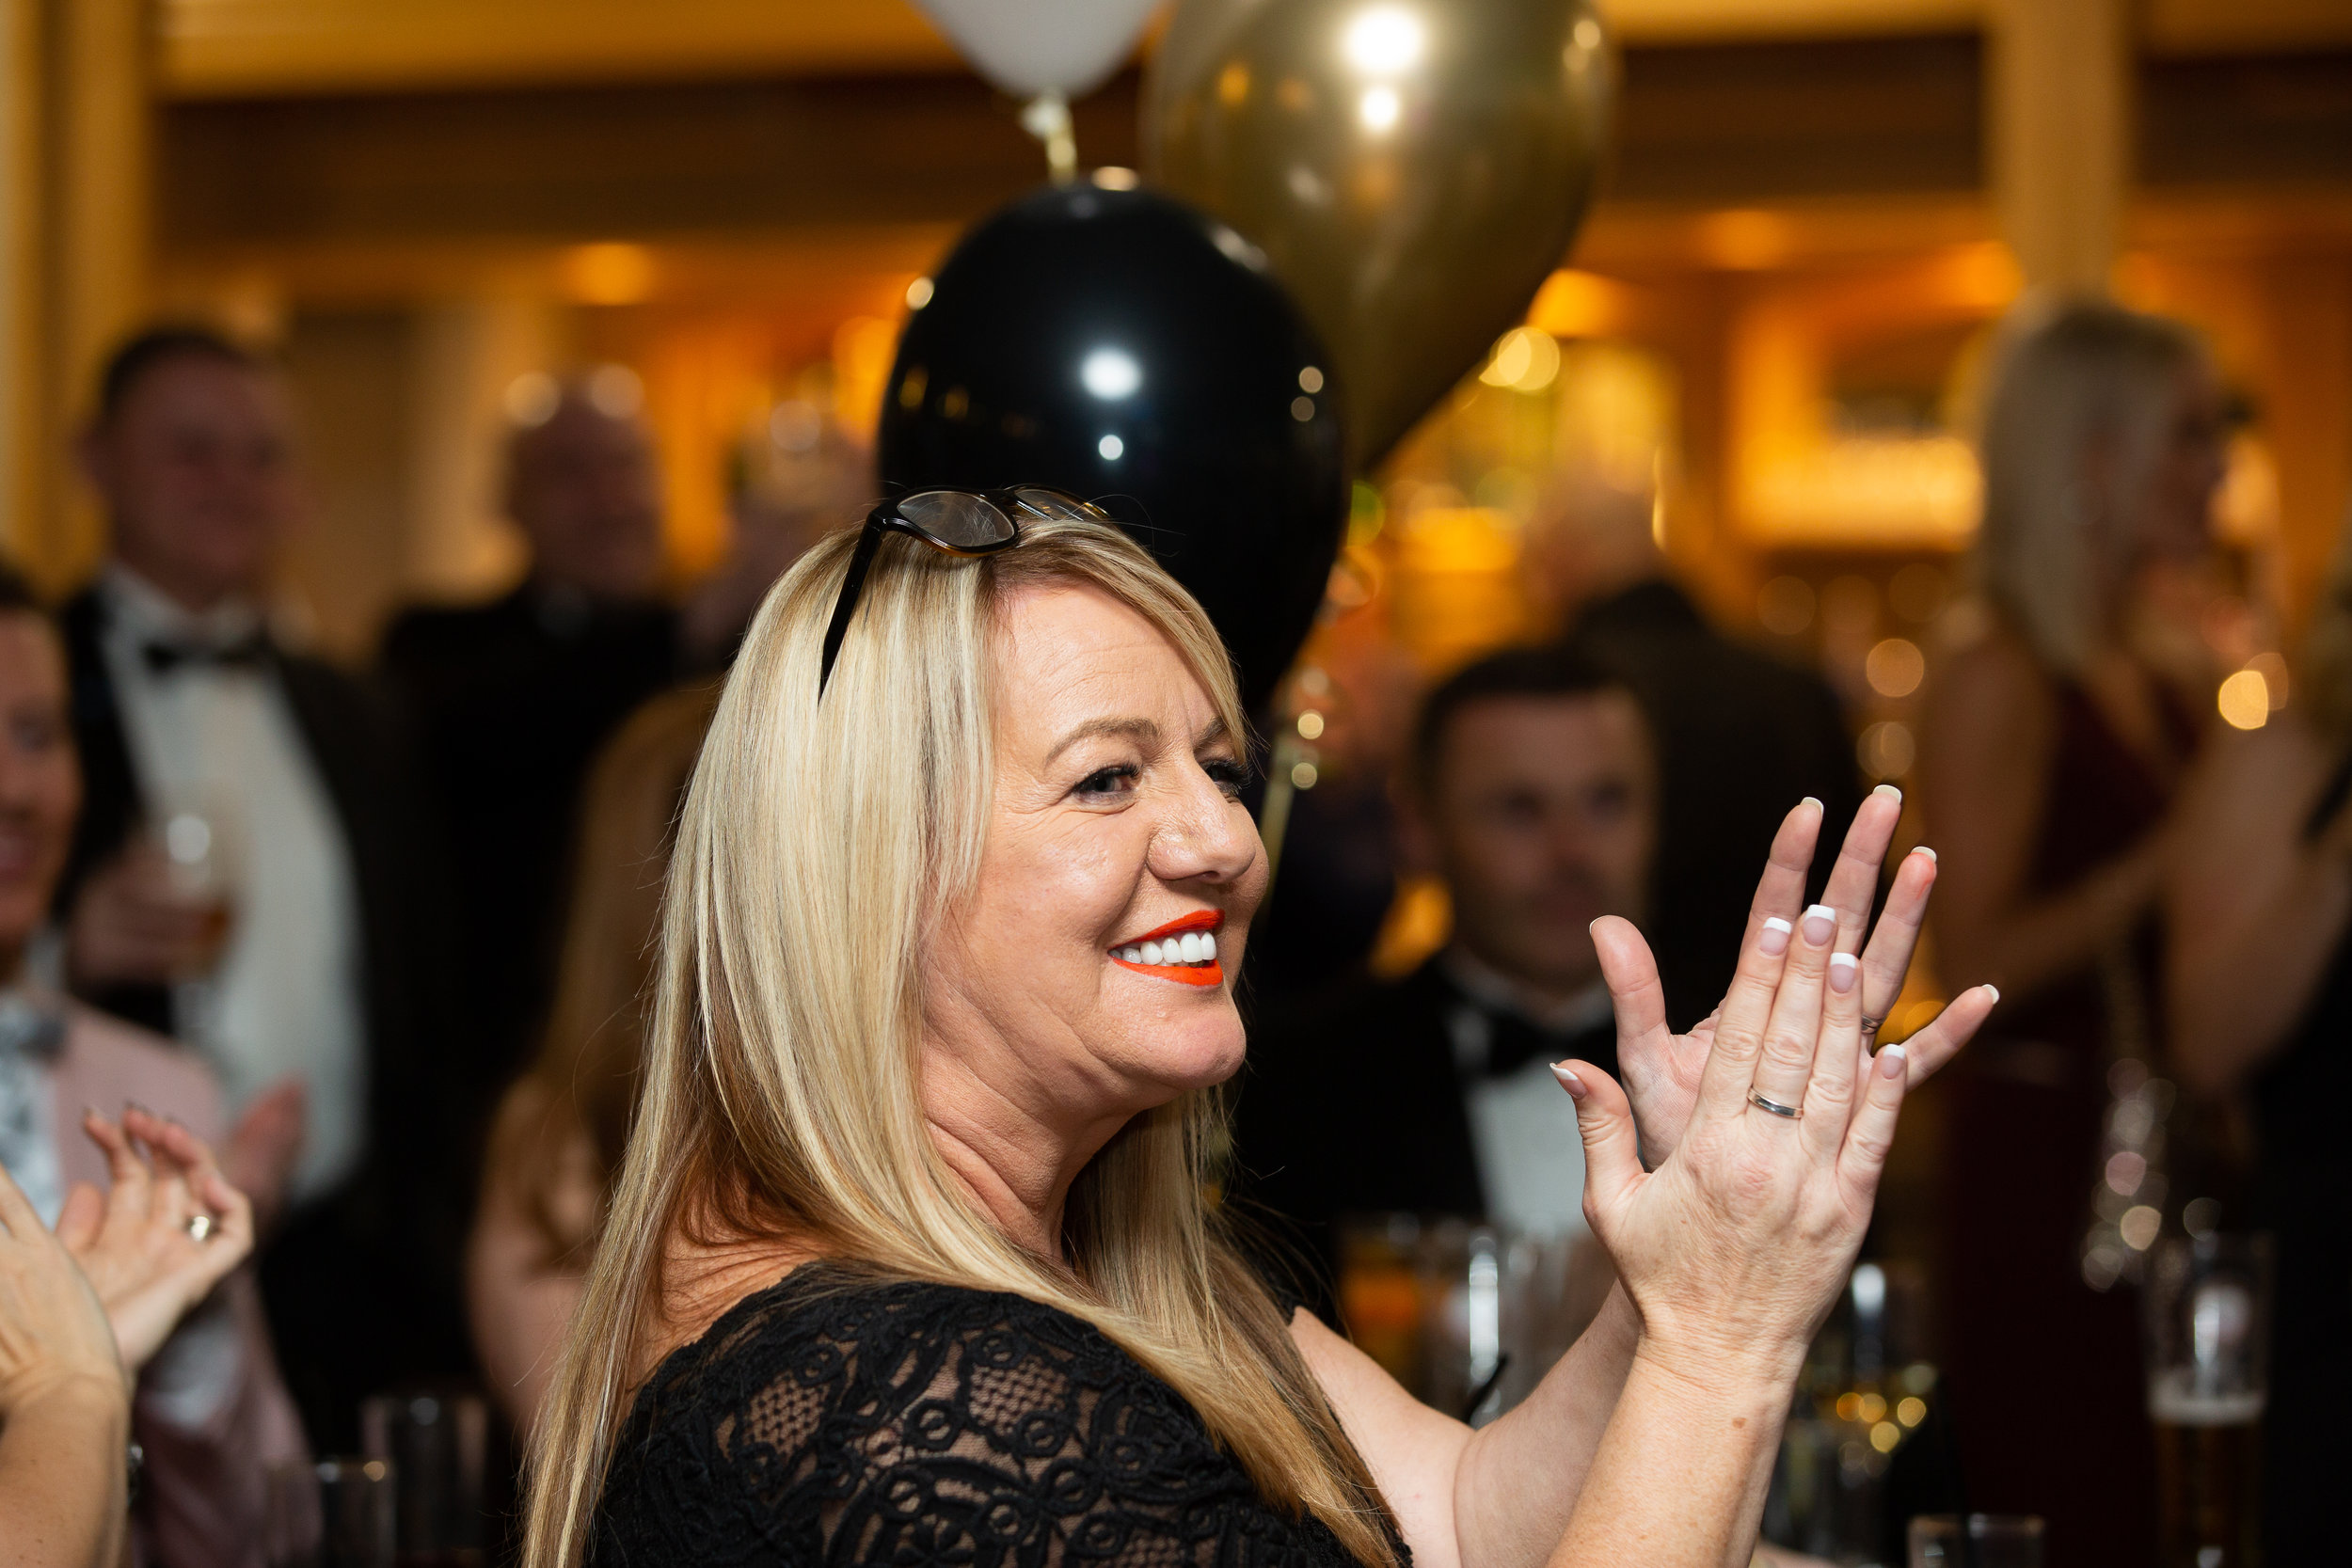 Claire Meldrum Photography PKC-3196.jpg - Party images Staffordshire